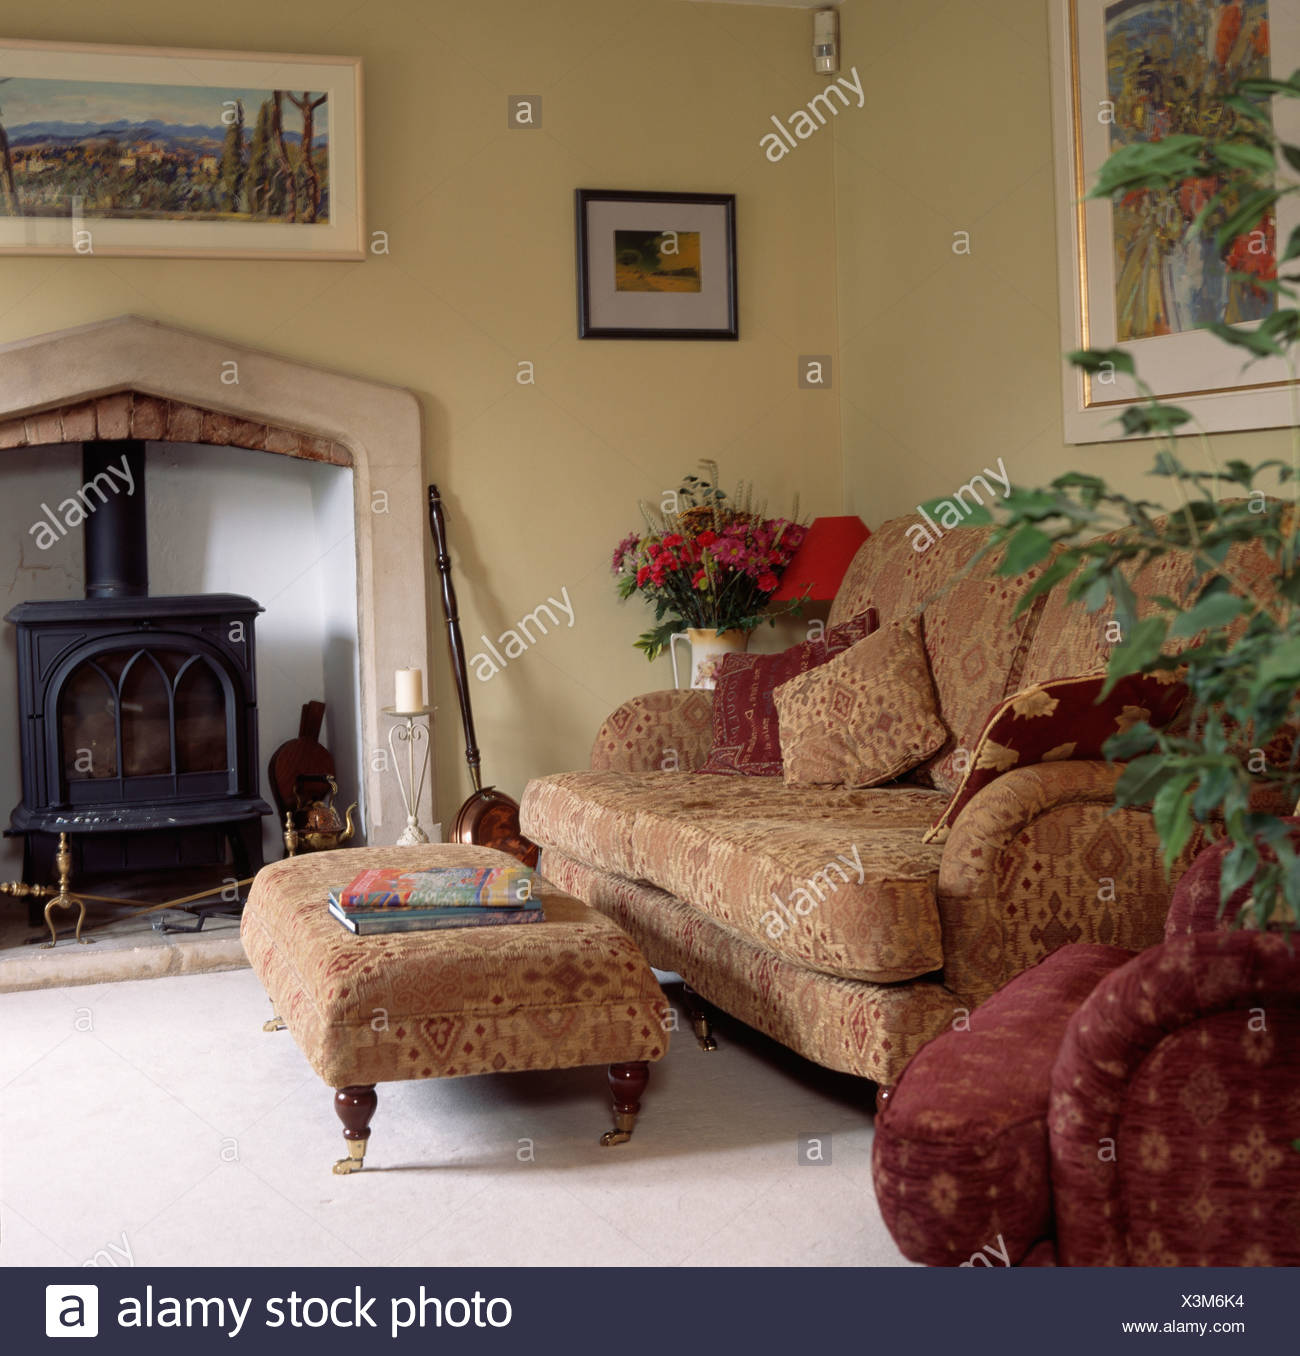 Superieur Patterned Neutral Sofa And Matching Upholstered Stool In Country Living Room  With Black Wood Burning Stove In Fireplace